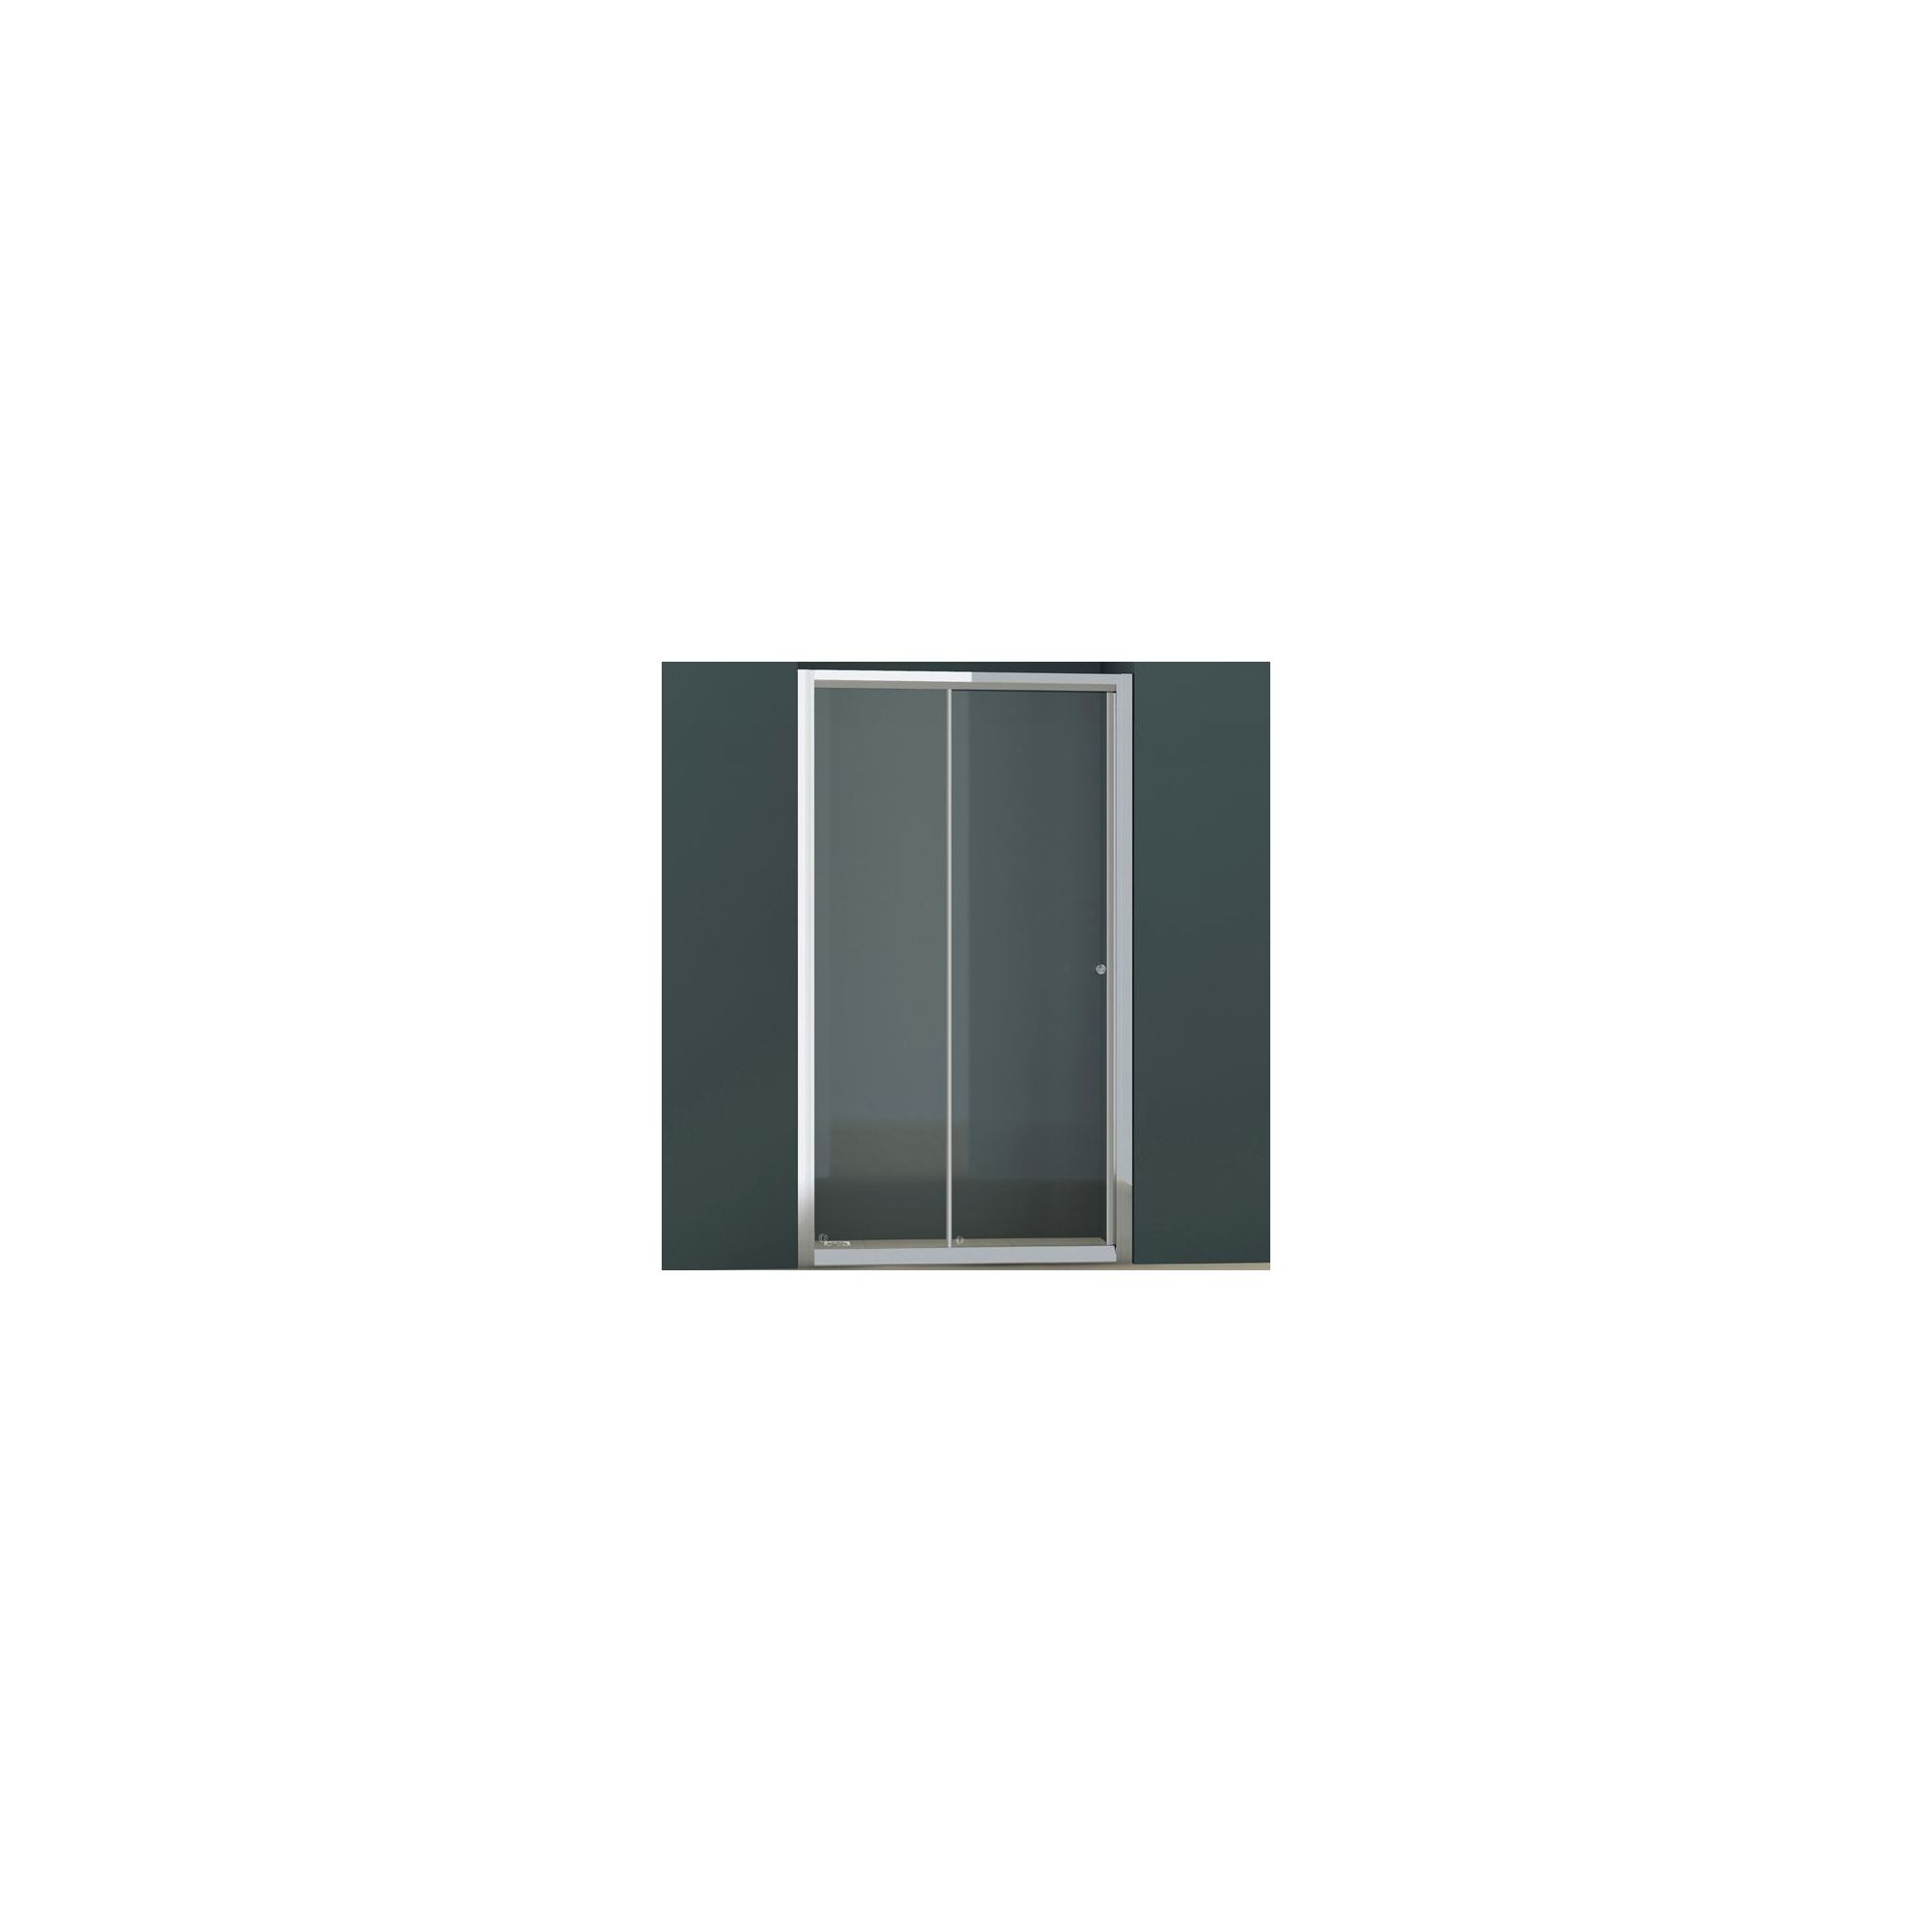 Vessini E Series Sliding Shower Door, 1400mm Wide, 6mm Glass at Tesco Direct